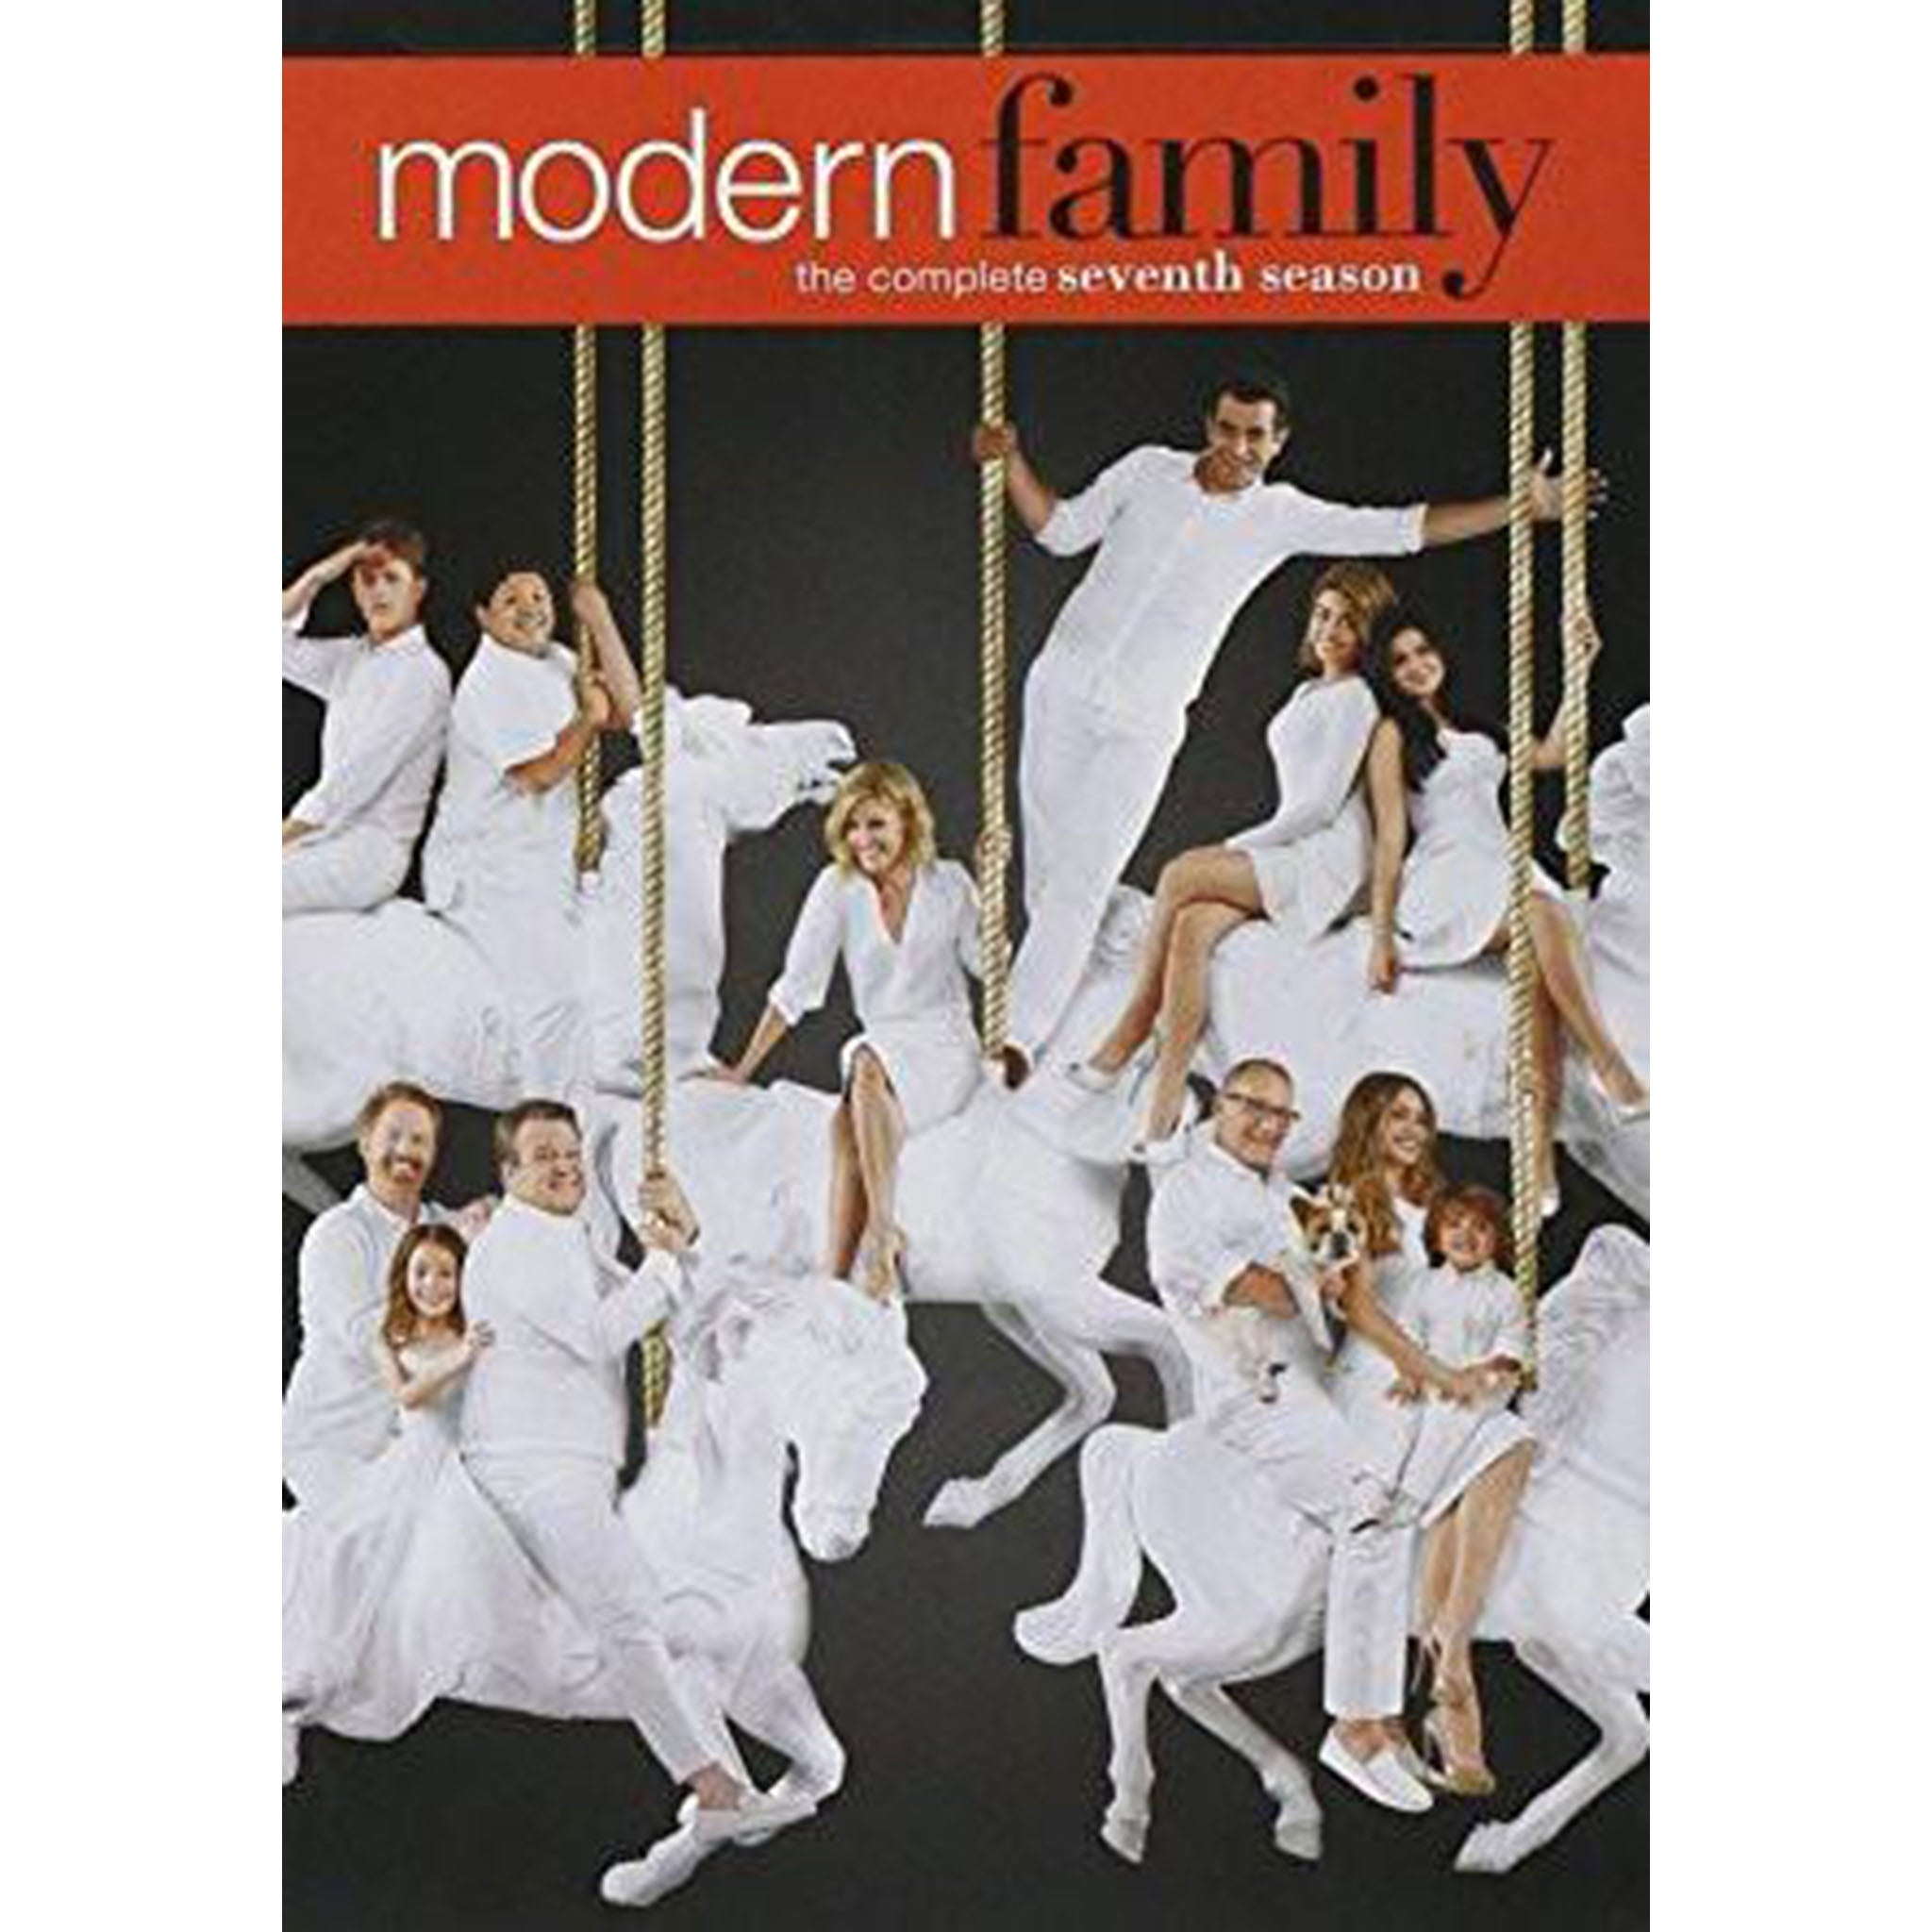 Modern Family Season 7 (DVD) - DVDsHQ